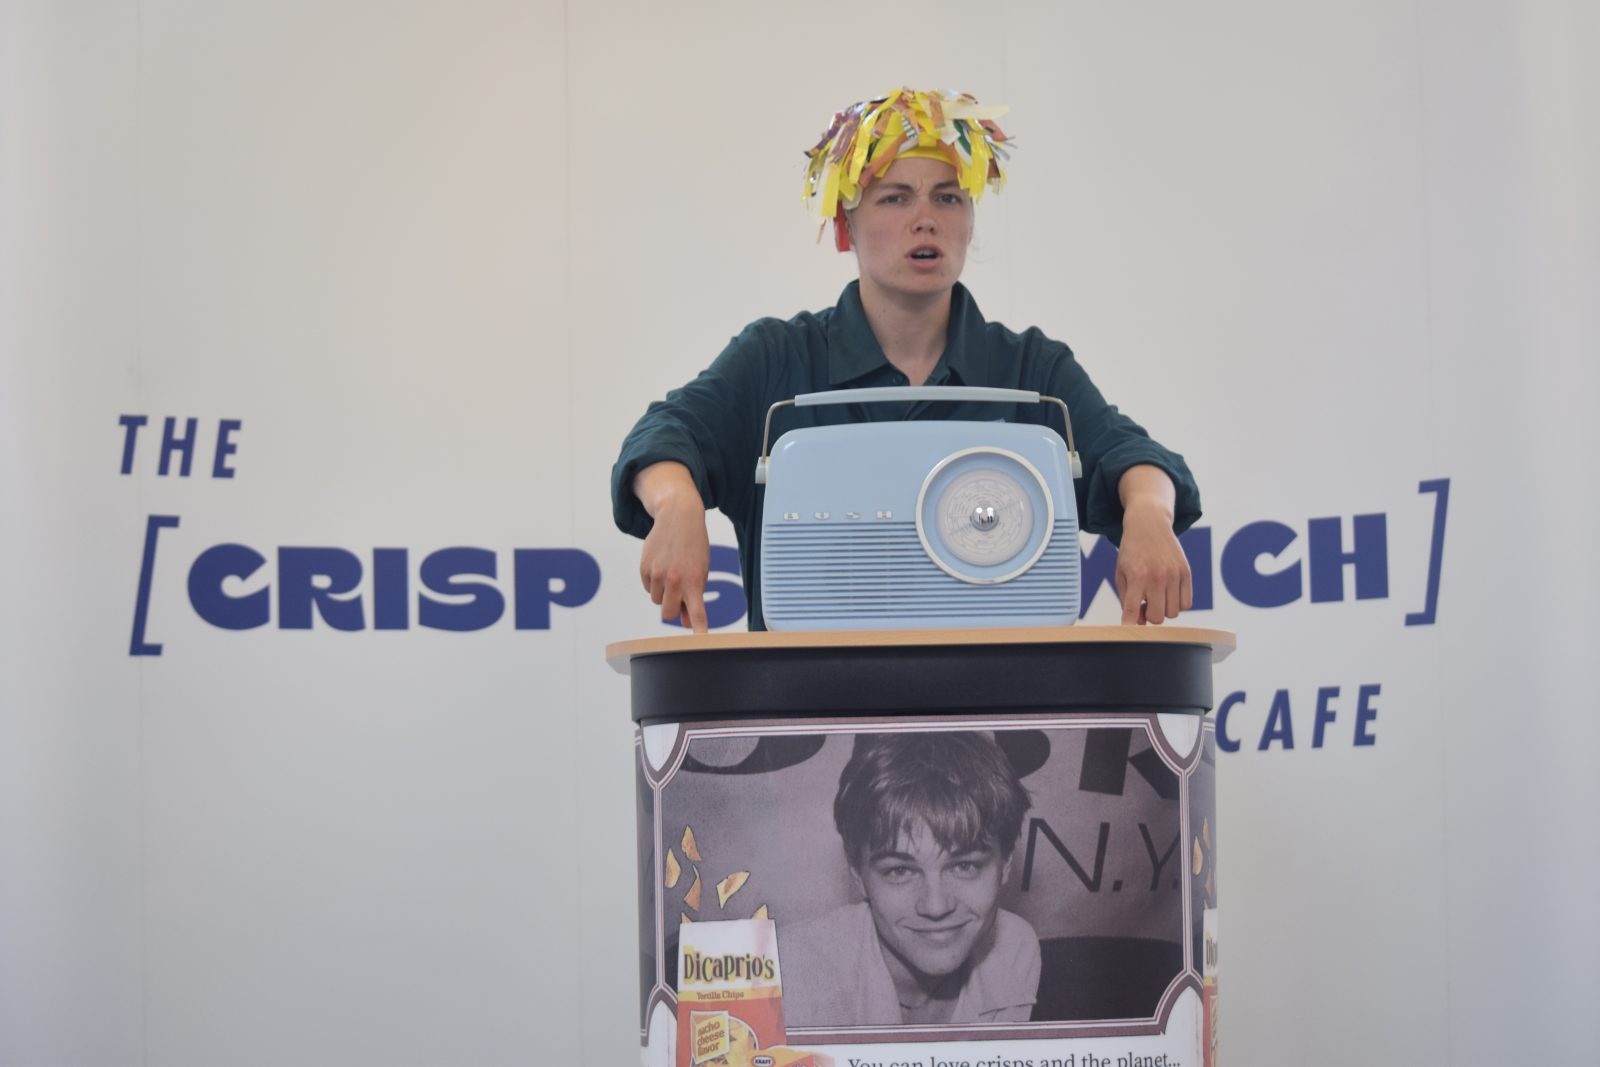 An interactive, autism-friendly crisp sandwich cafe show is coming to Manchester, The Manc